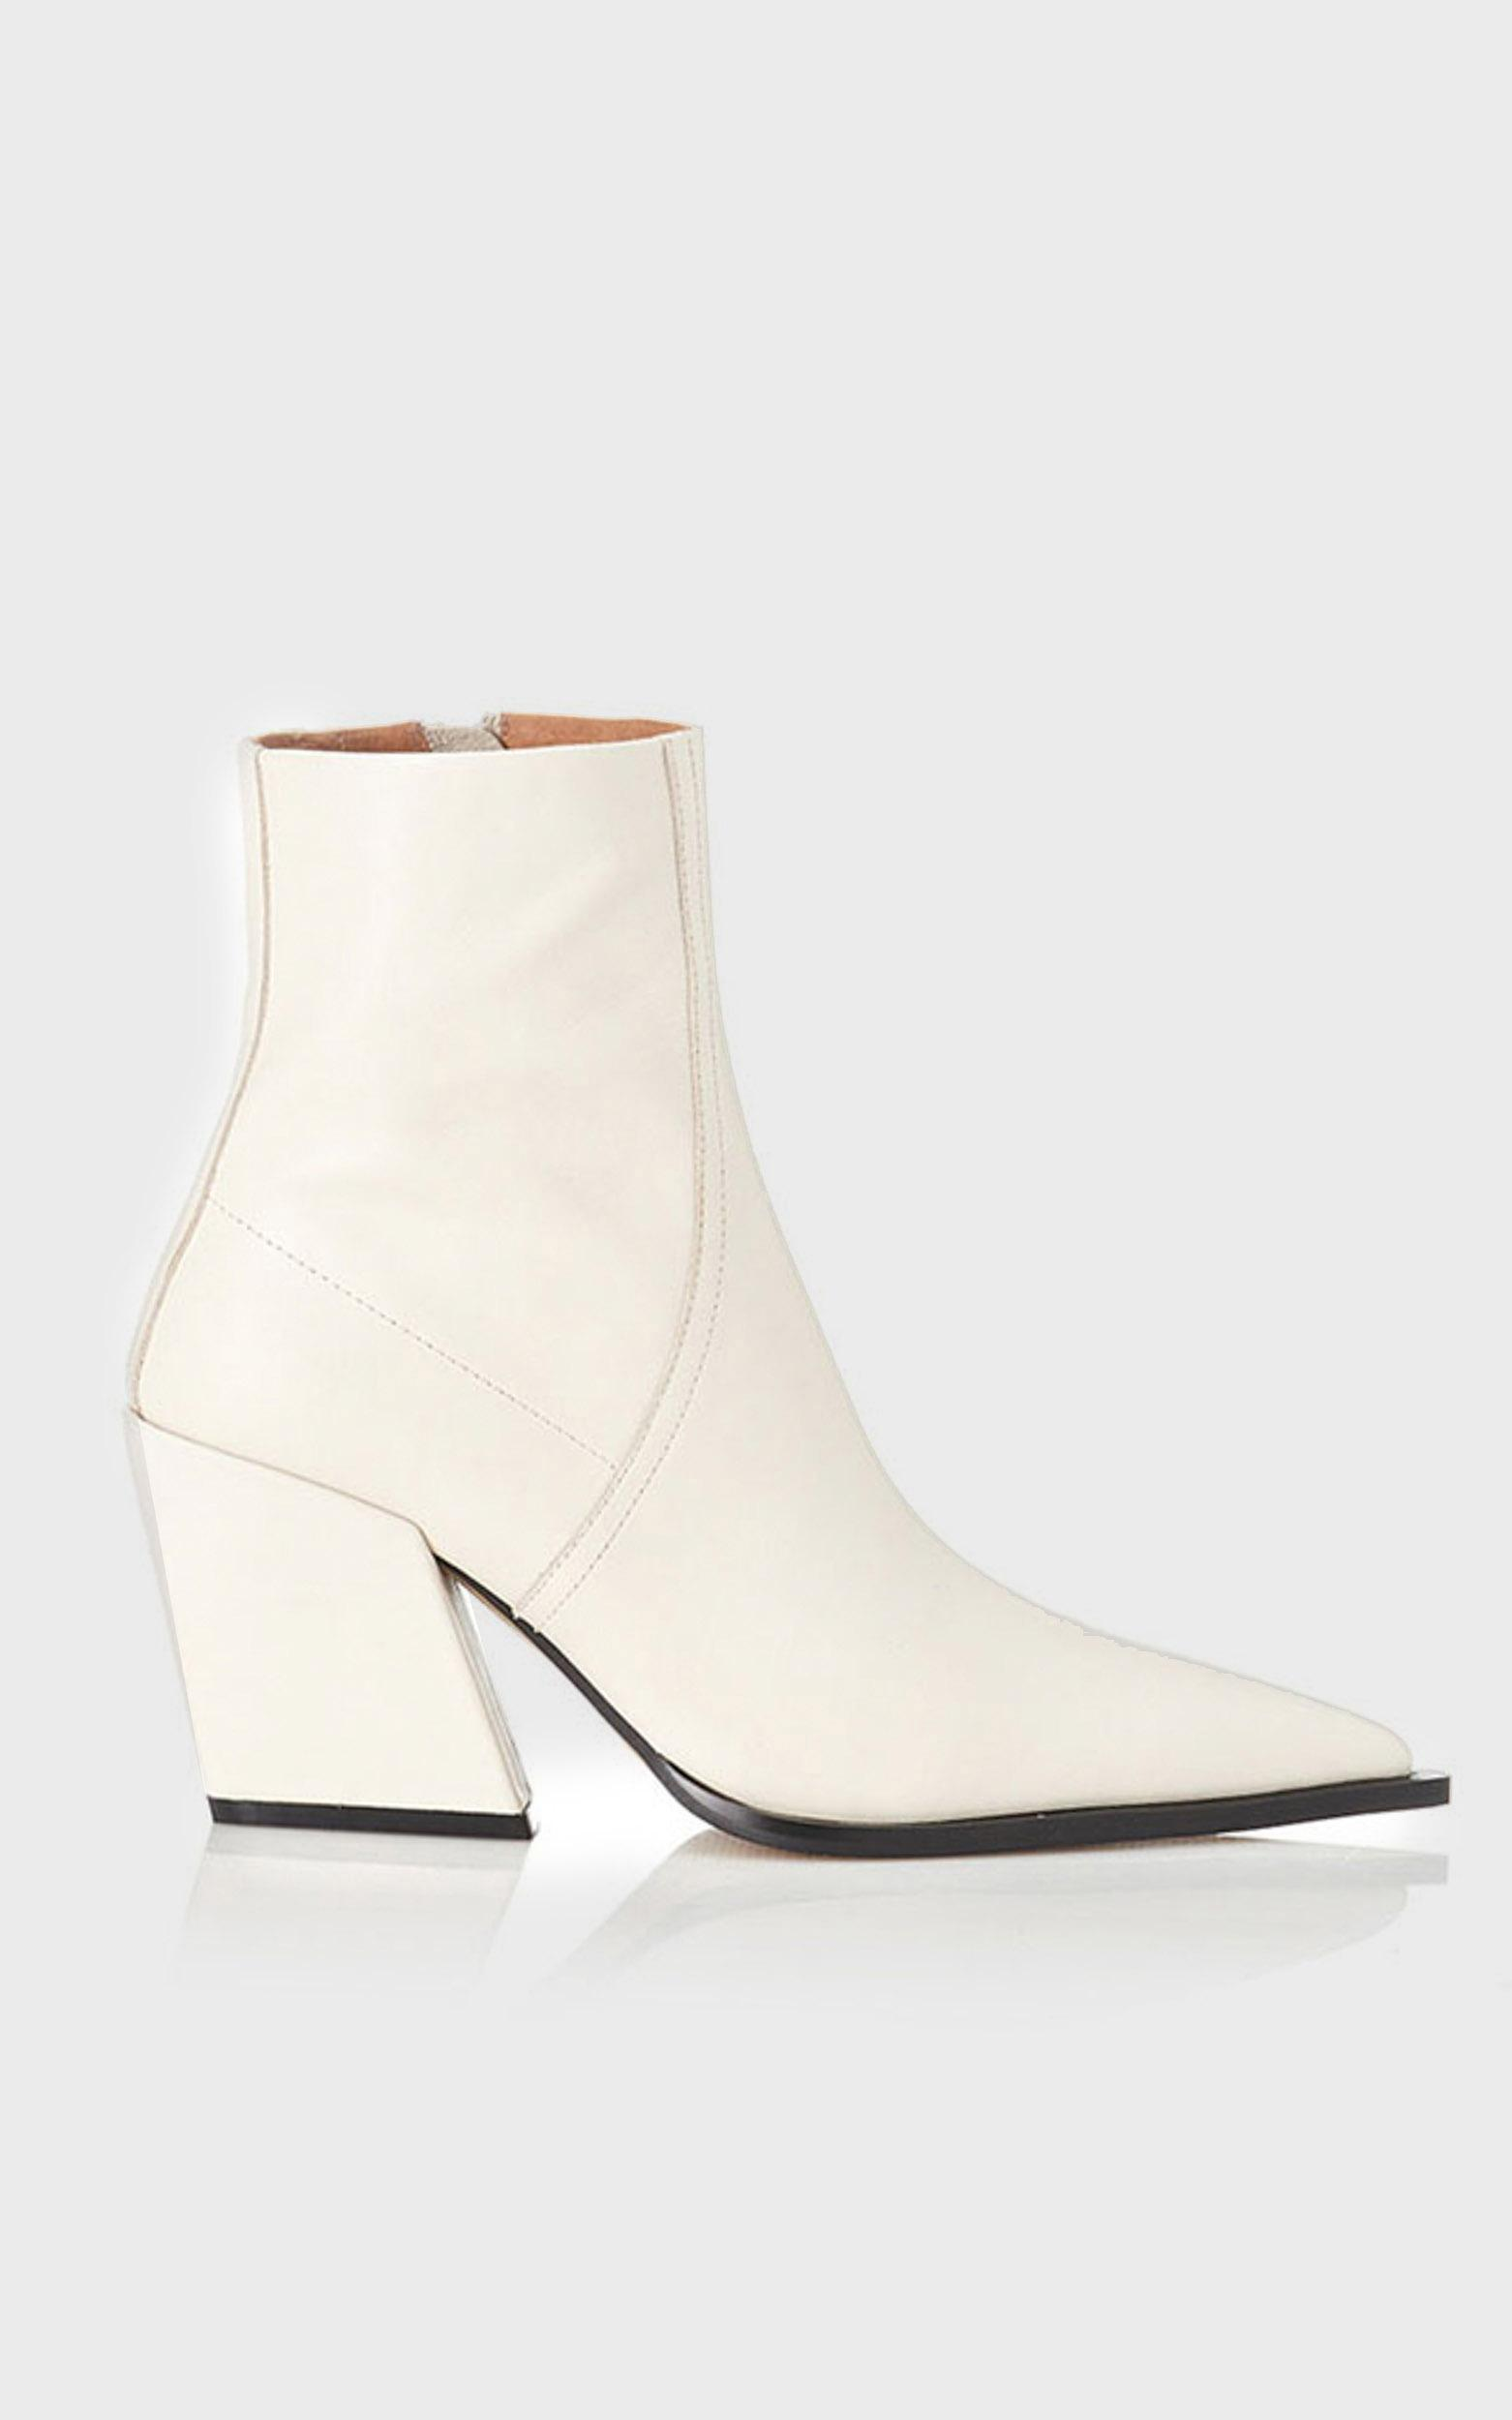 Alias Mae - Knight Boots in Bone Leather - 5.5, WHT1, hi-res image number null